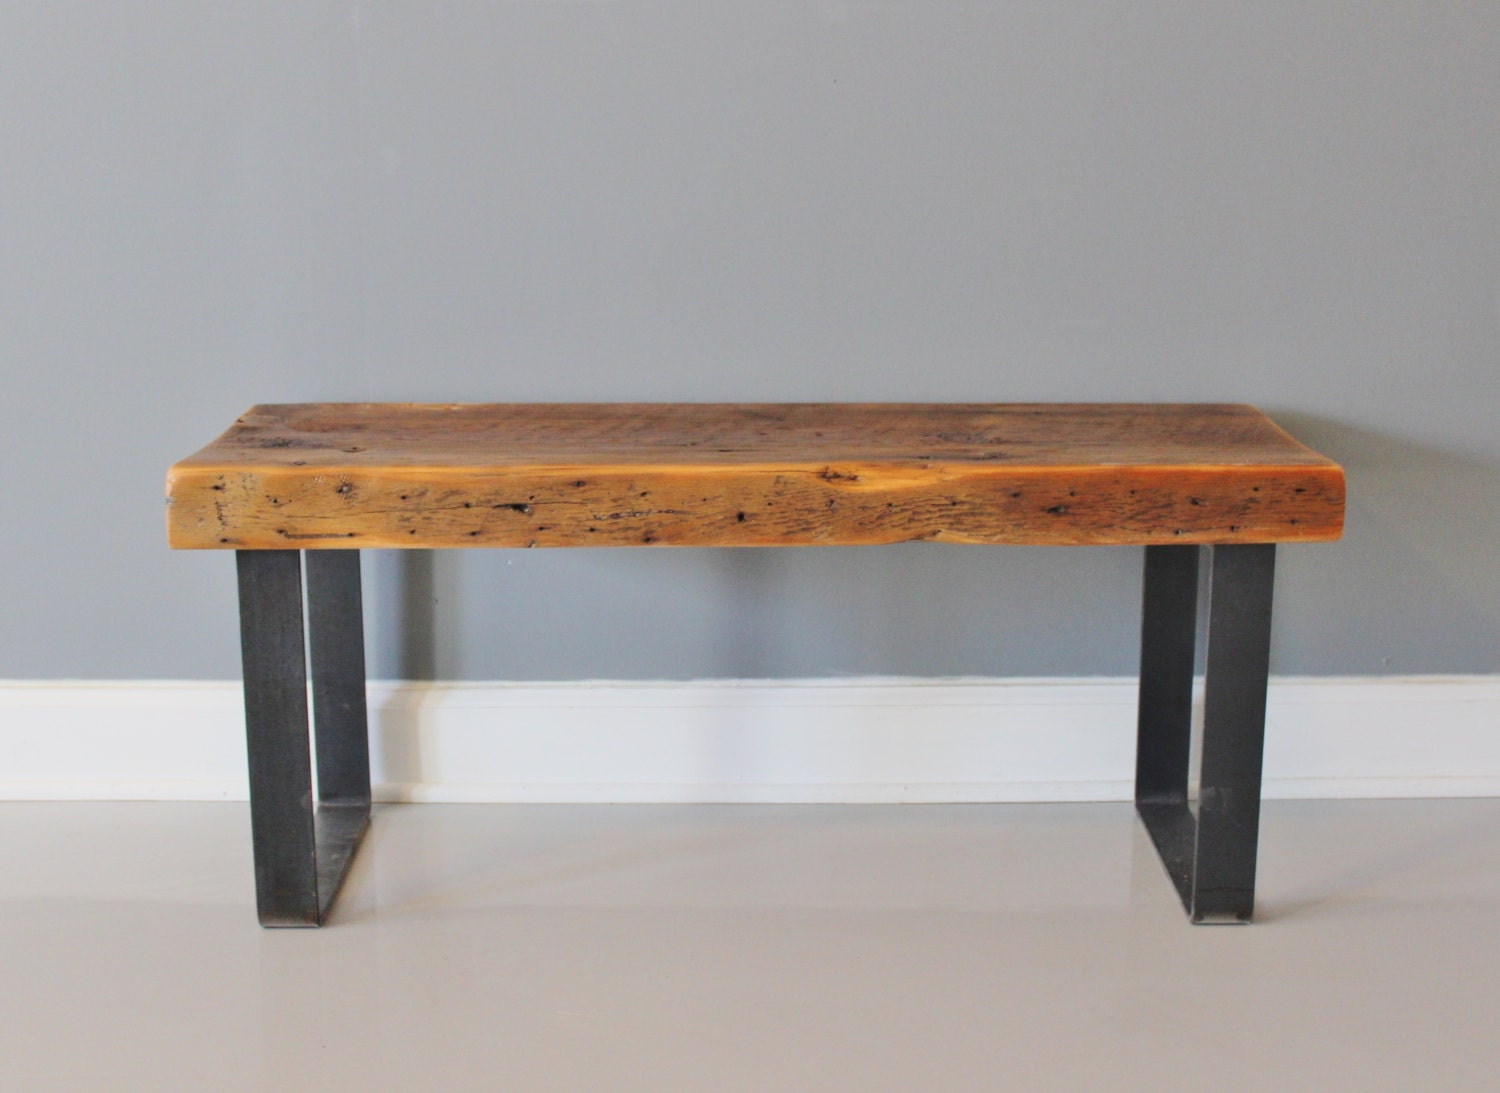 Bench Industrial Steel And Wood Reclaimed Wood Bench By